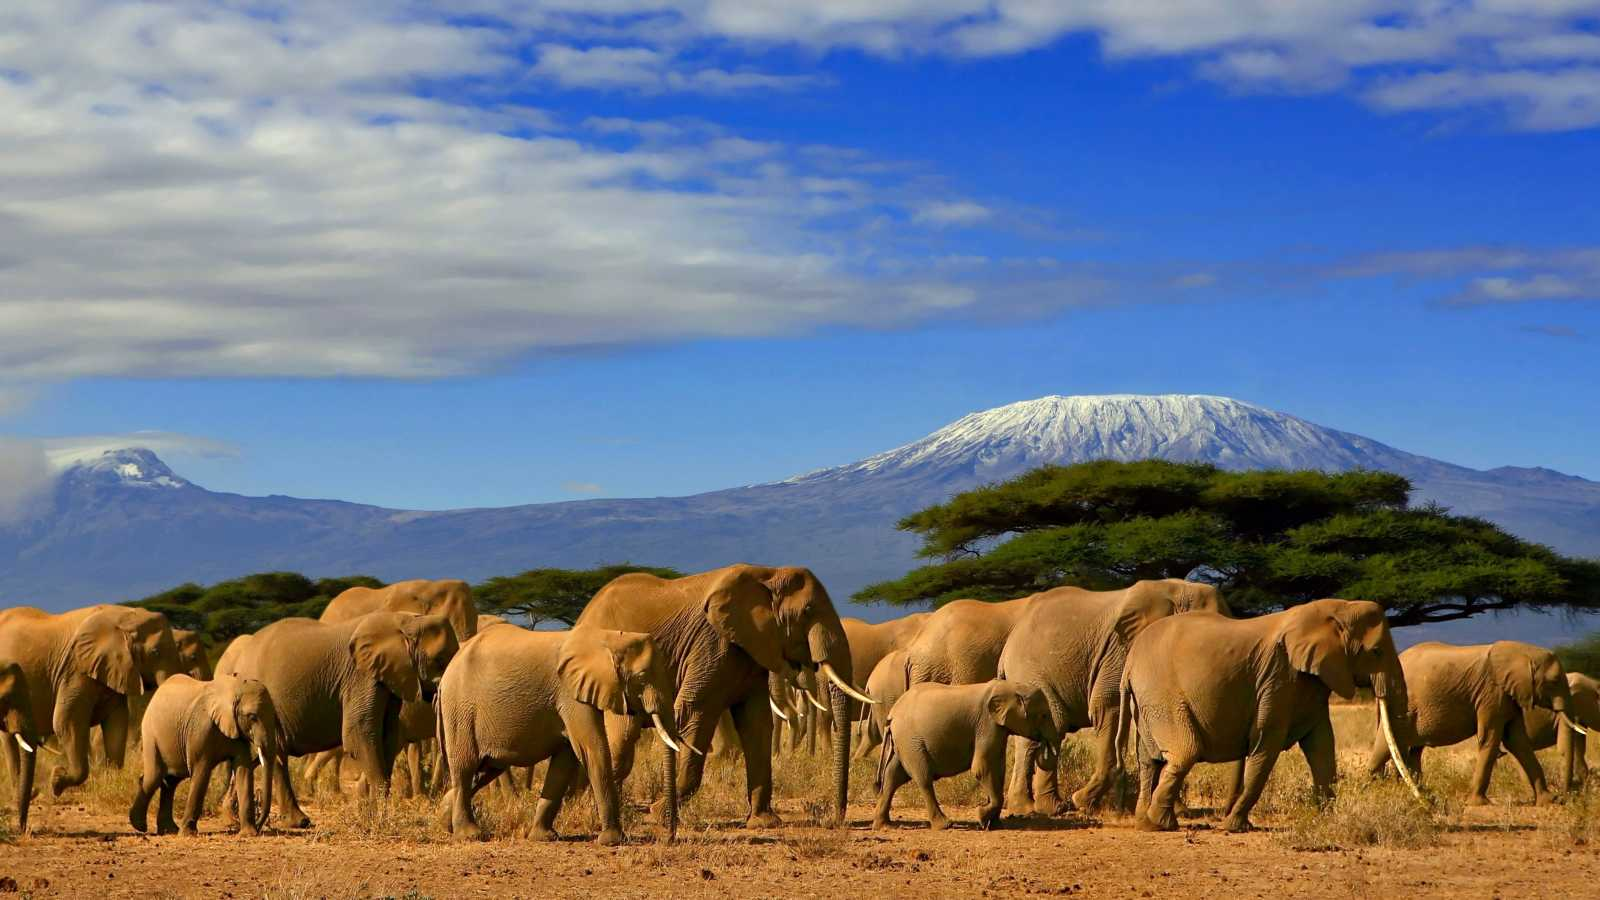 A herd of elephants in Kenya